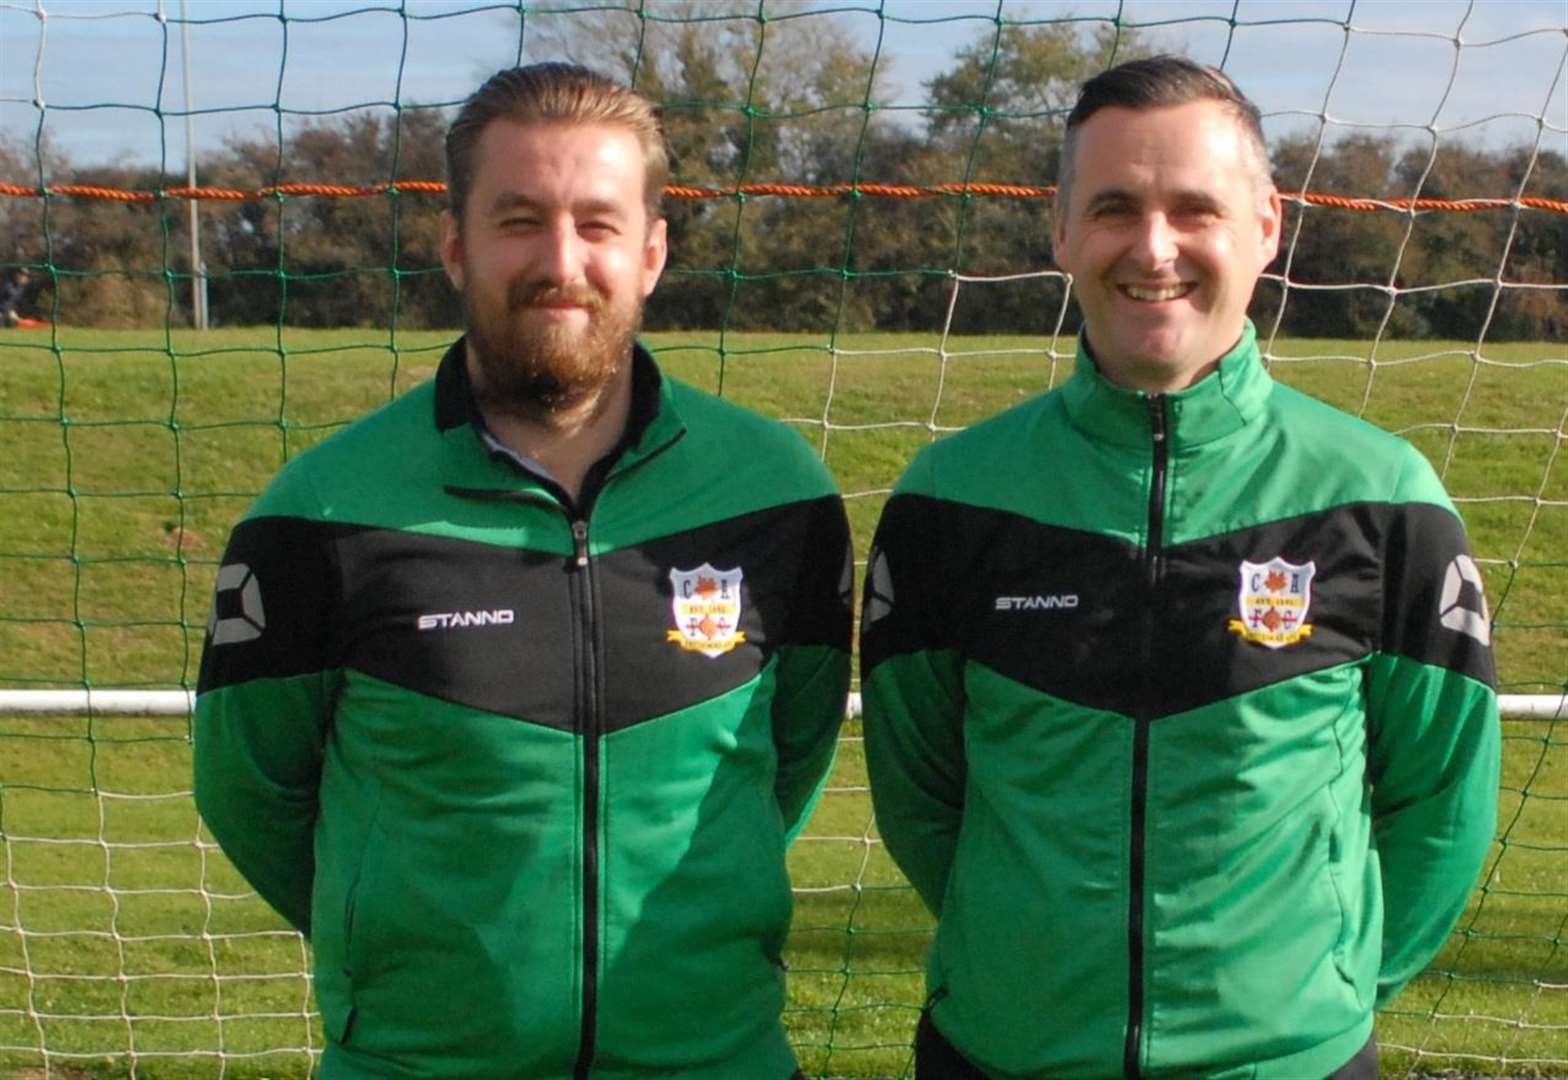 FOOTBALL: Joint management team for Cottesmore Amateurs